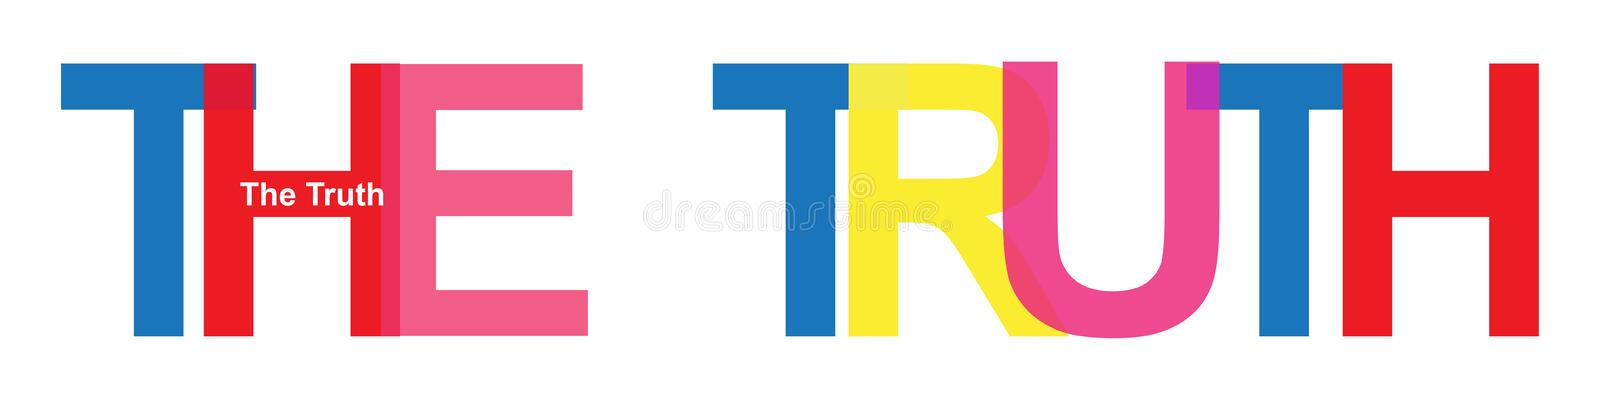 The truth. Artistic illustration in colorful uppercase letters of the text 'the truth', shown on a white background vector illustration